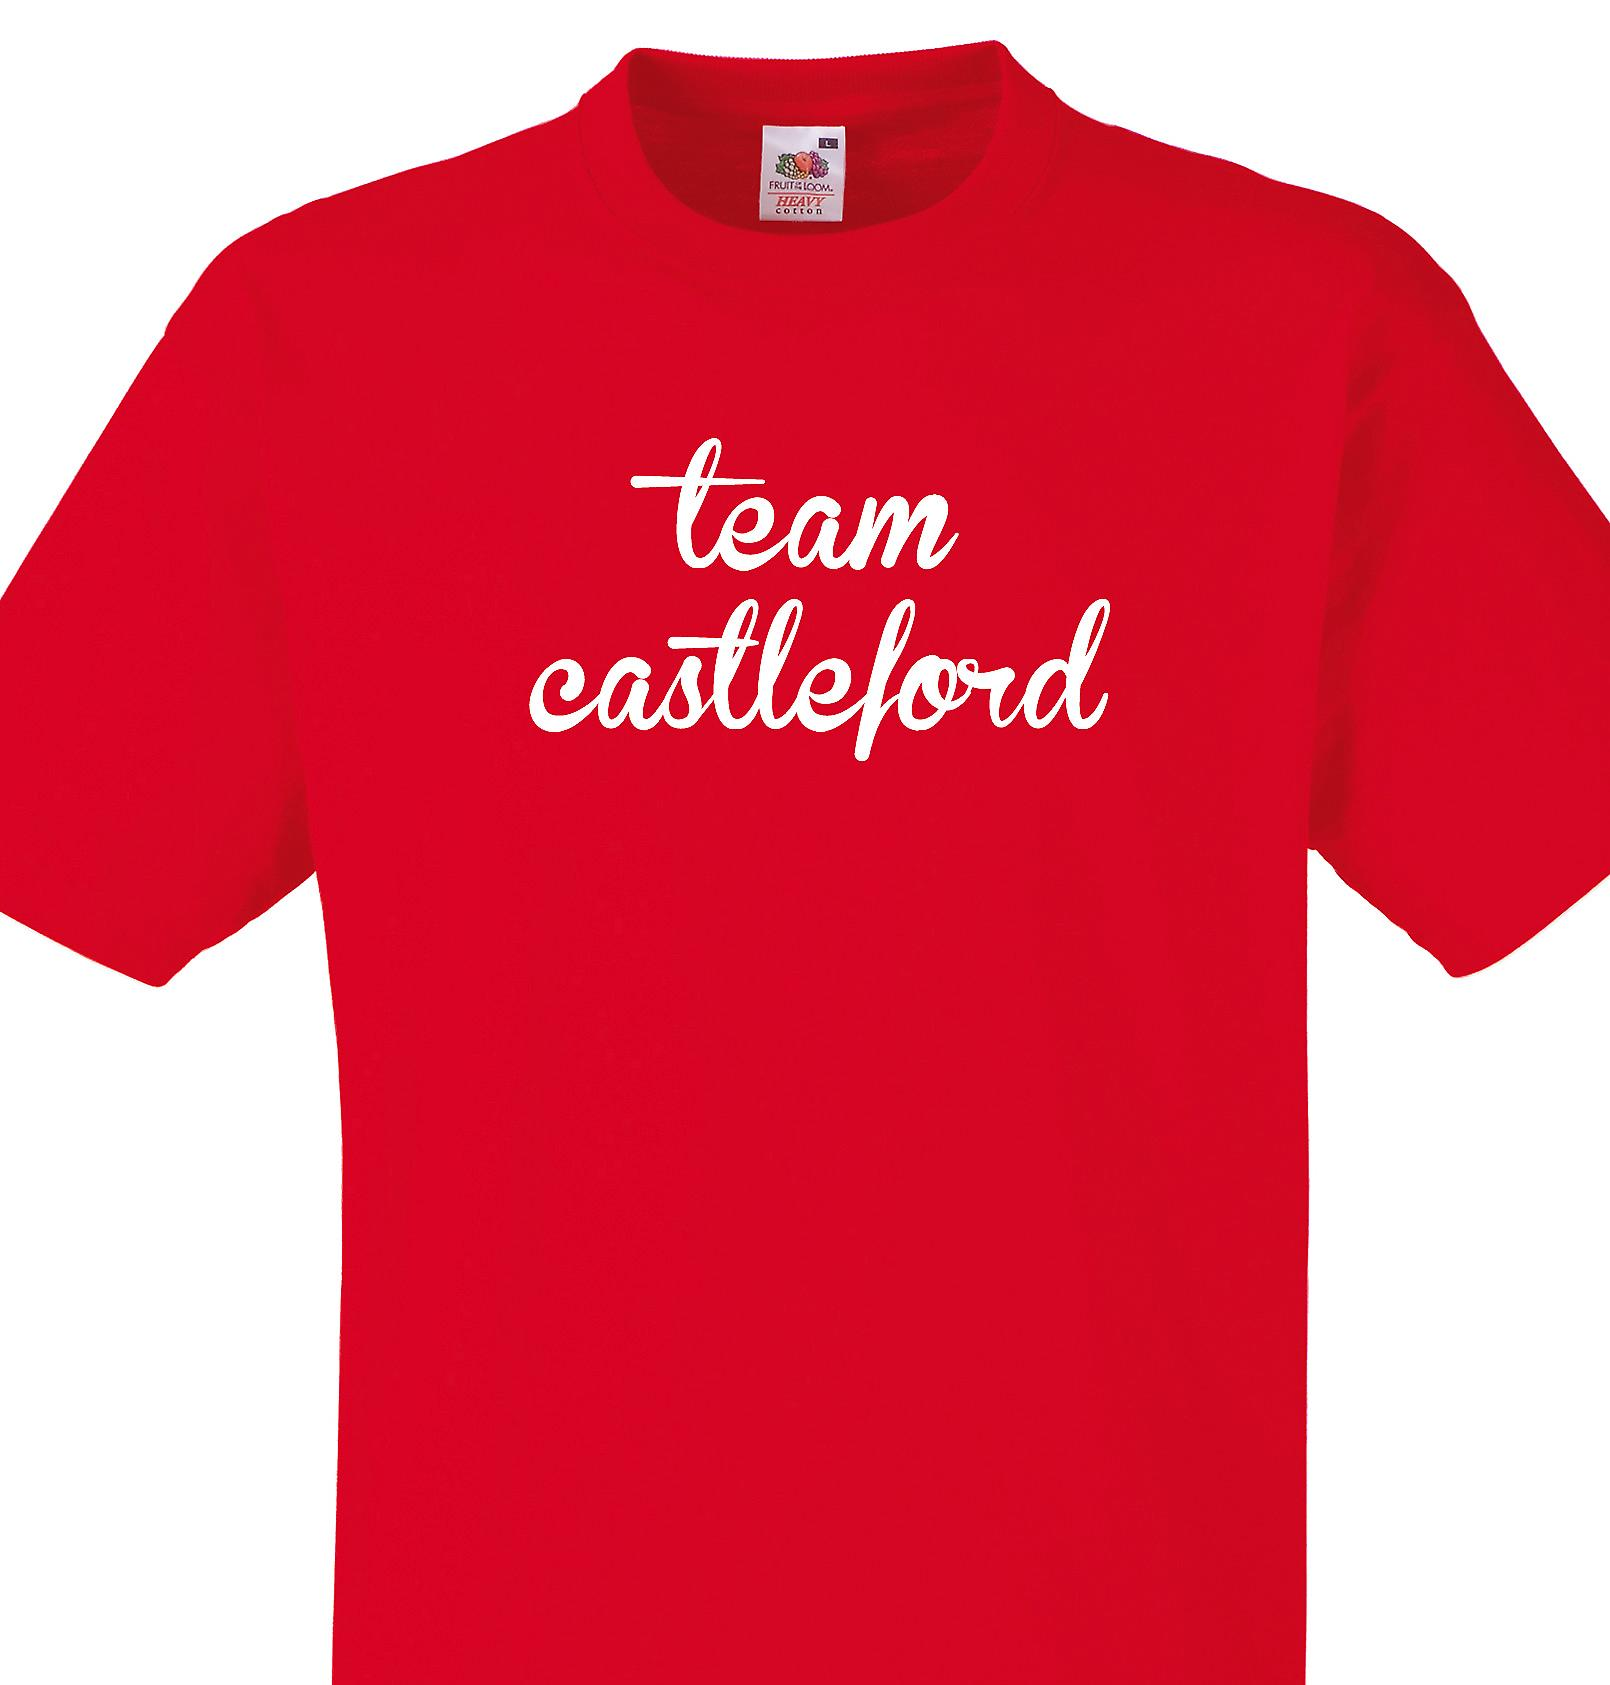 Team Castleford Red T shirt